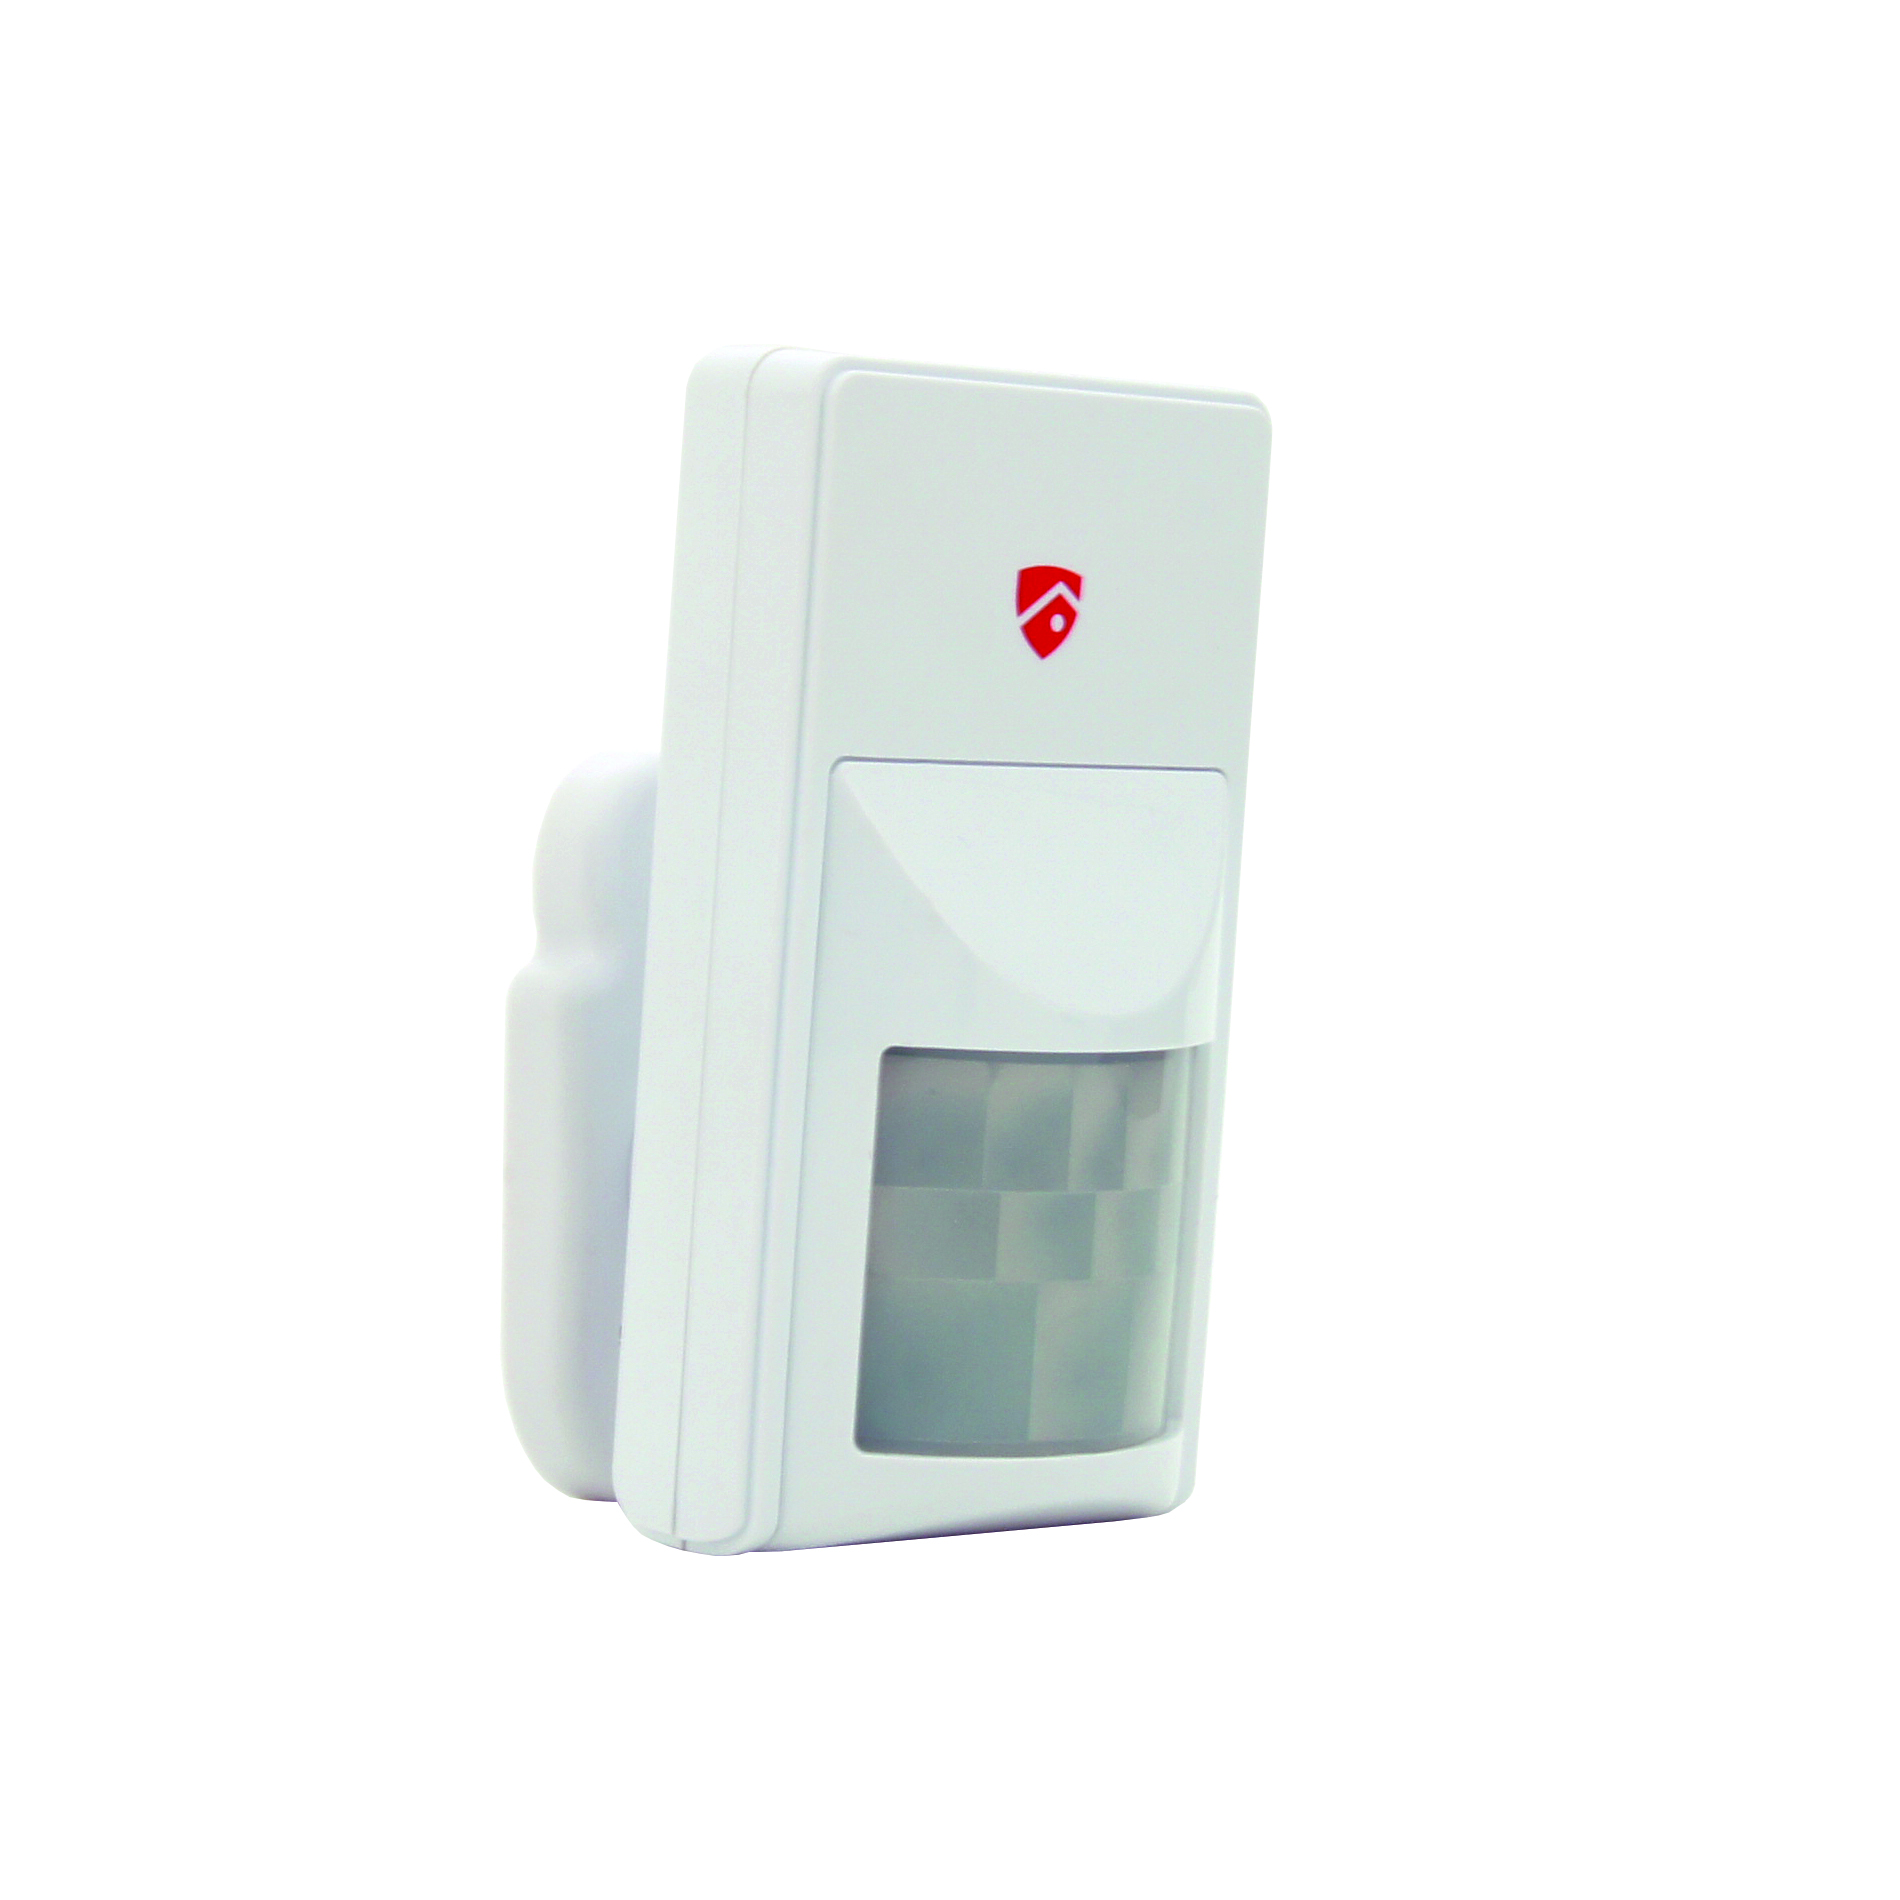 Add on motion detector